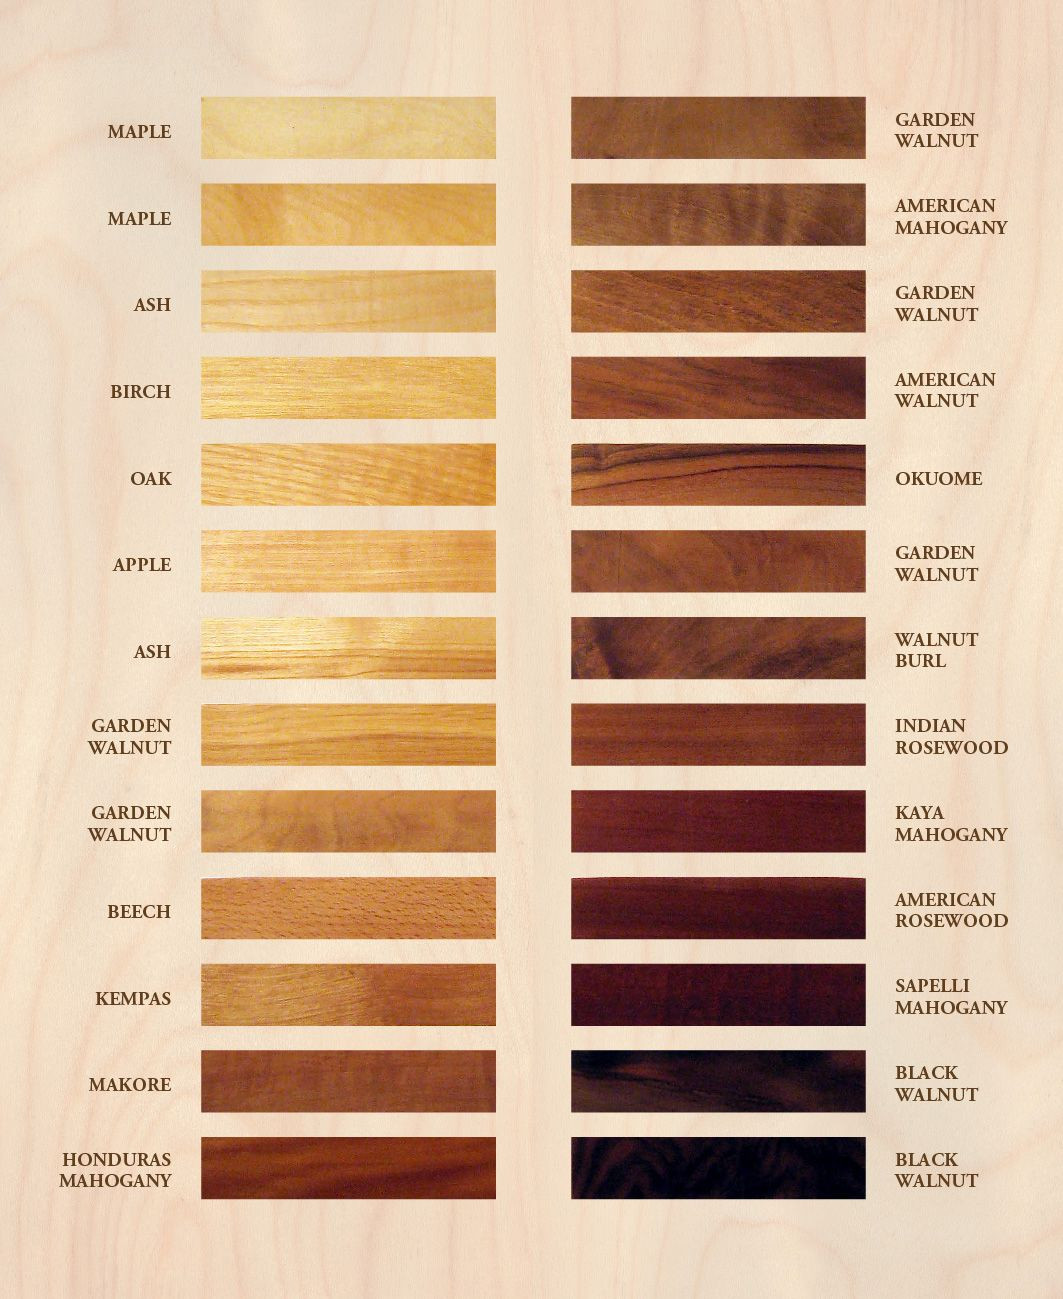 hardwood flooring hardness scale acacia of wood color chart by wood arts intarsia portraits hobbies in wood color chart by wood arts intarsia portraits